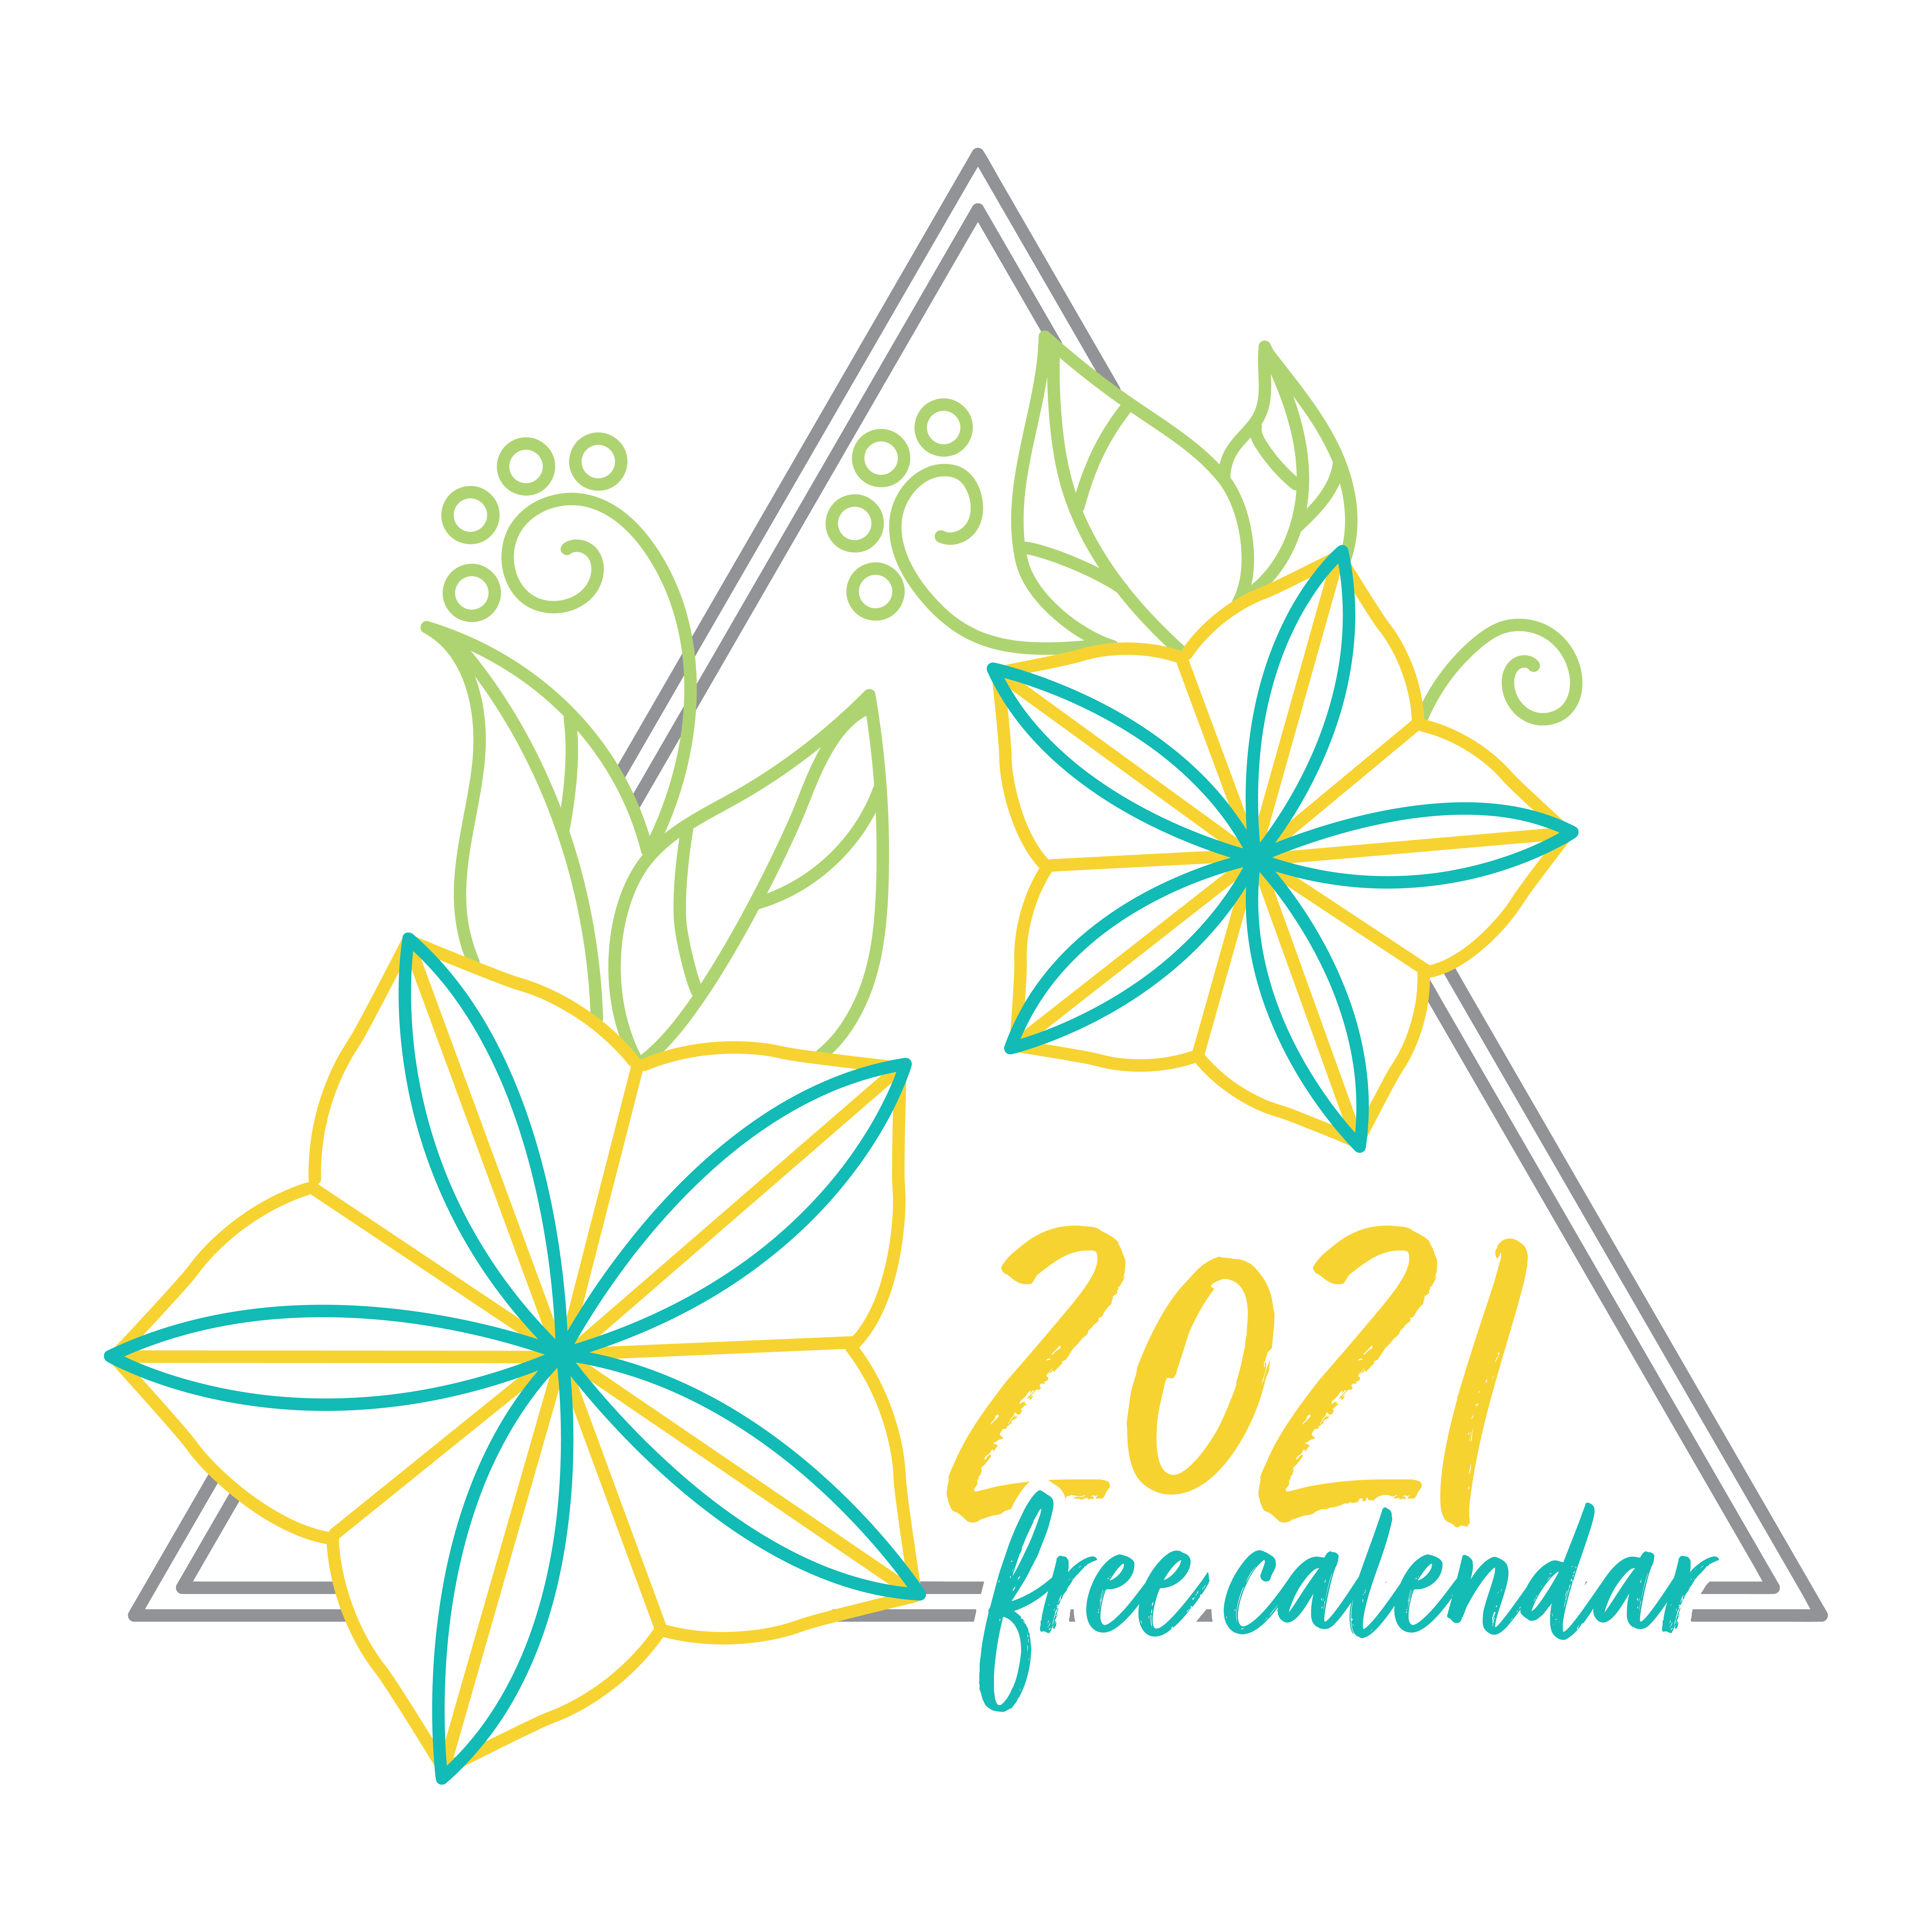 Flowers in triangle in yellow, green, and aqua - 2021 calendar design in text.